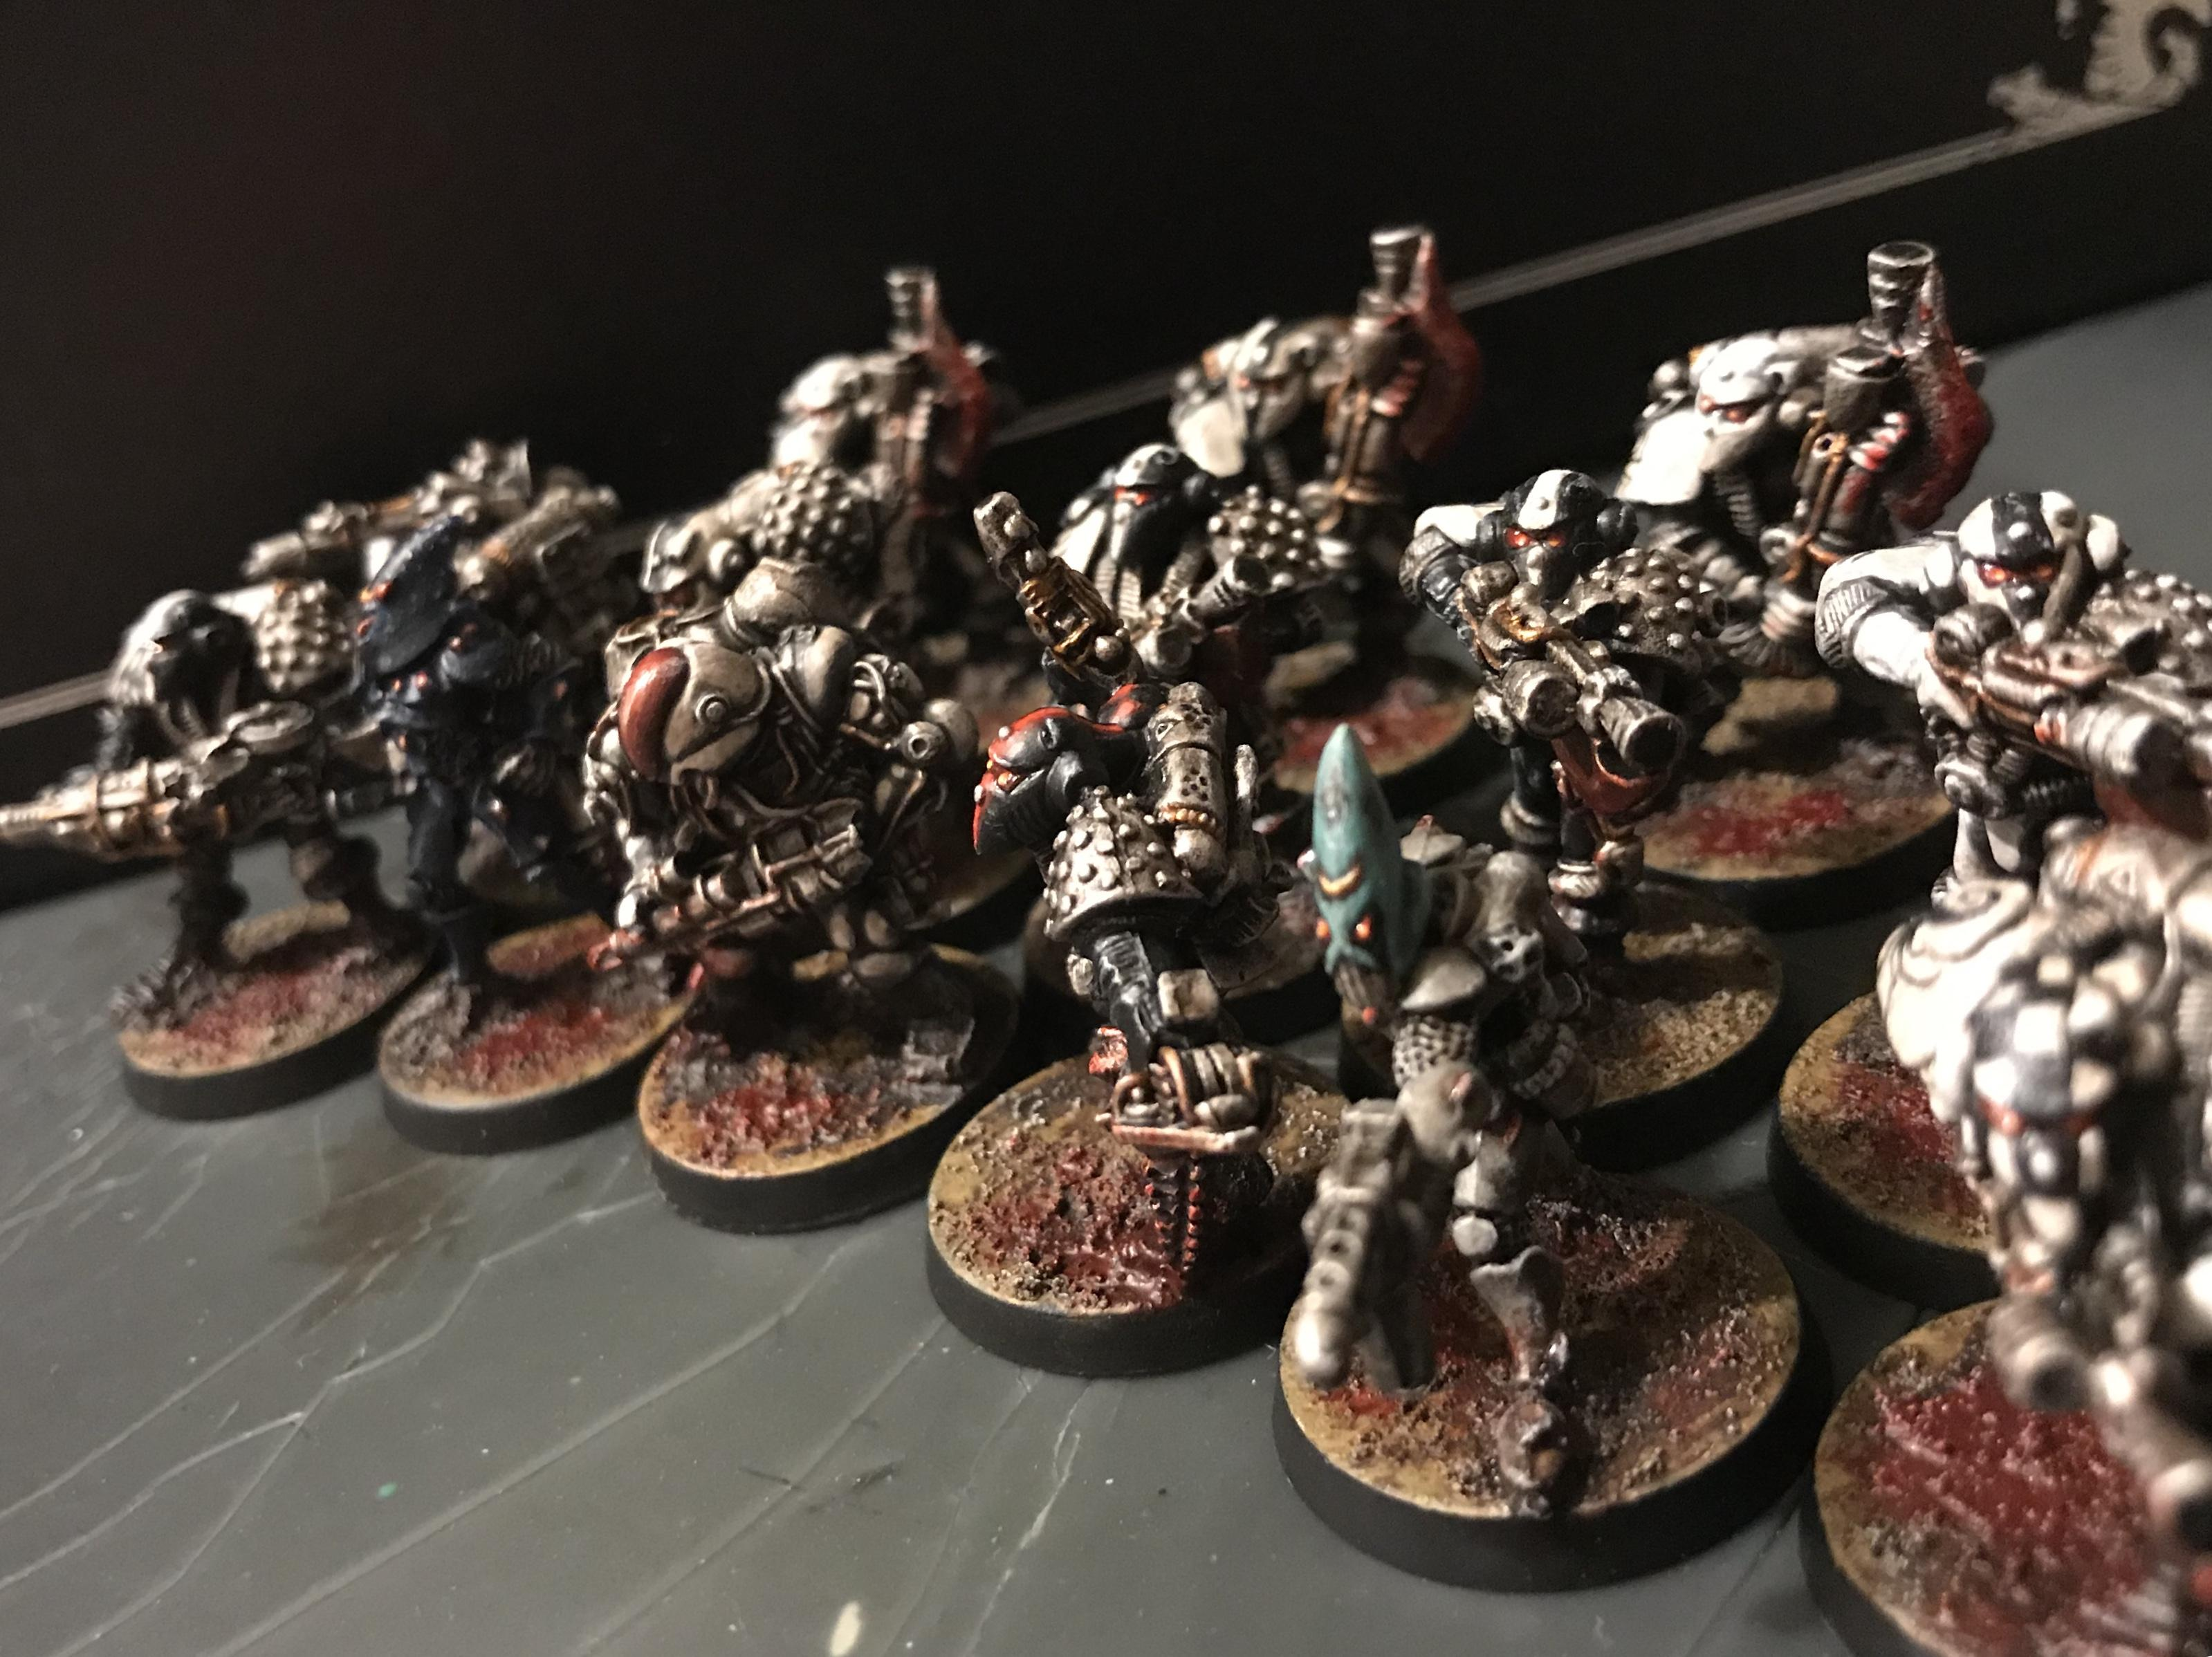 117, 2nd, 41st, Adeptus, Adventurers, Aeldari, Aelf, Aelves, Alaitoc, And, Armor, Astartes, Badab, Battle, Black, Blade, Bolters, Boltguns, Brother, Brothers, Brutal, C100, Captain, Catapult, Chaos, Chaotic, Chapter, Chapters, Combi, Combi-bolter, Combi-disintegrator, Combi-weapon, Corsairs, Craftworld, Craftworlders, Damned, Dark, Darkness, Deep, Disintegrator, Drukhari, Eldar, Elves, Evil, Eye, Fair, Far, Fj, Folk, Founding, Future, Gate, God, Gods, Grim, Guardians, Gun, Heavy, Heresy, Hobby, Horus, Human, Humans, Imperial, Imperium, Kaos, Kill, Laser, Legionaries, Legionnaire, Lost, Mage, Magic, Malal, Malice, Man, Mankind, Mercenary, Mesh, Millennium, Moon, Of, Oldhammer, Outcast, Outcasts, Painted, Pirate, Pirates, Power, Power Armor, Power Armored, Powers, Psychic, Pyro, Pyromaniac, Raider, Raiders, Rangers, Realms, Reaver, Reavers, Recon, Red, Reference, Renegade, Renegades, Retro, Rogue, Ruinous, Runner, Saphery, Second, Shadow, Shuriken, Slaves, Soldier, Space, Space Marines, Spartan, Spider, Spiders, Squad, Successor, Survivors, Tannhäuser, Tannhauser, Team, Teams, Terror, To, Trader, Traders, Traitor, Trooper, Troopers, Troops, Unit, Veteran, Void, War, Warhammer 40,000, Warhammer Fantasy, Warp, Warriors, Weapon, White, Widow